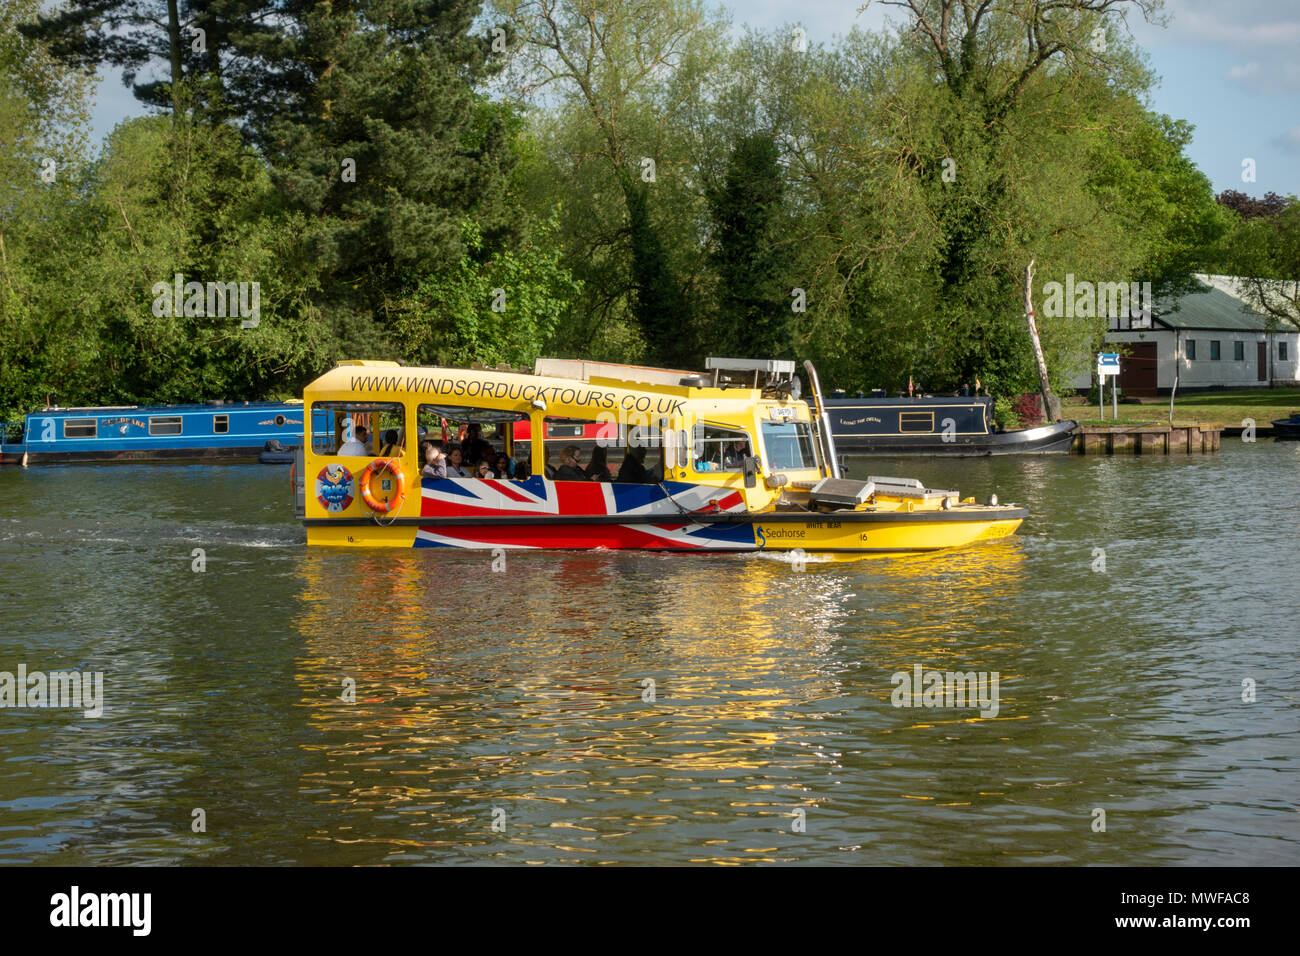 The Windsor Duck Tours 'White Bear' DUKW tour boat crusing on the  River Thames, UK. - Stock Image